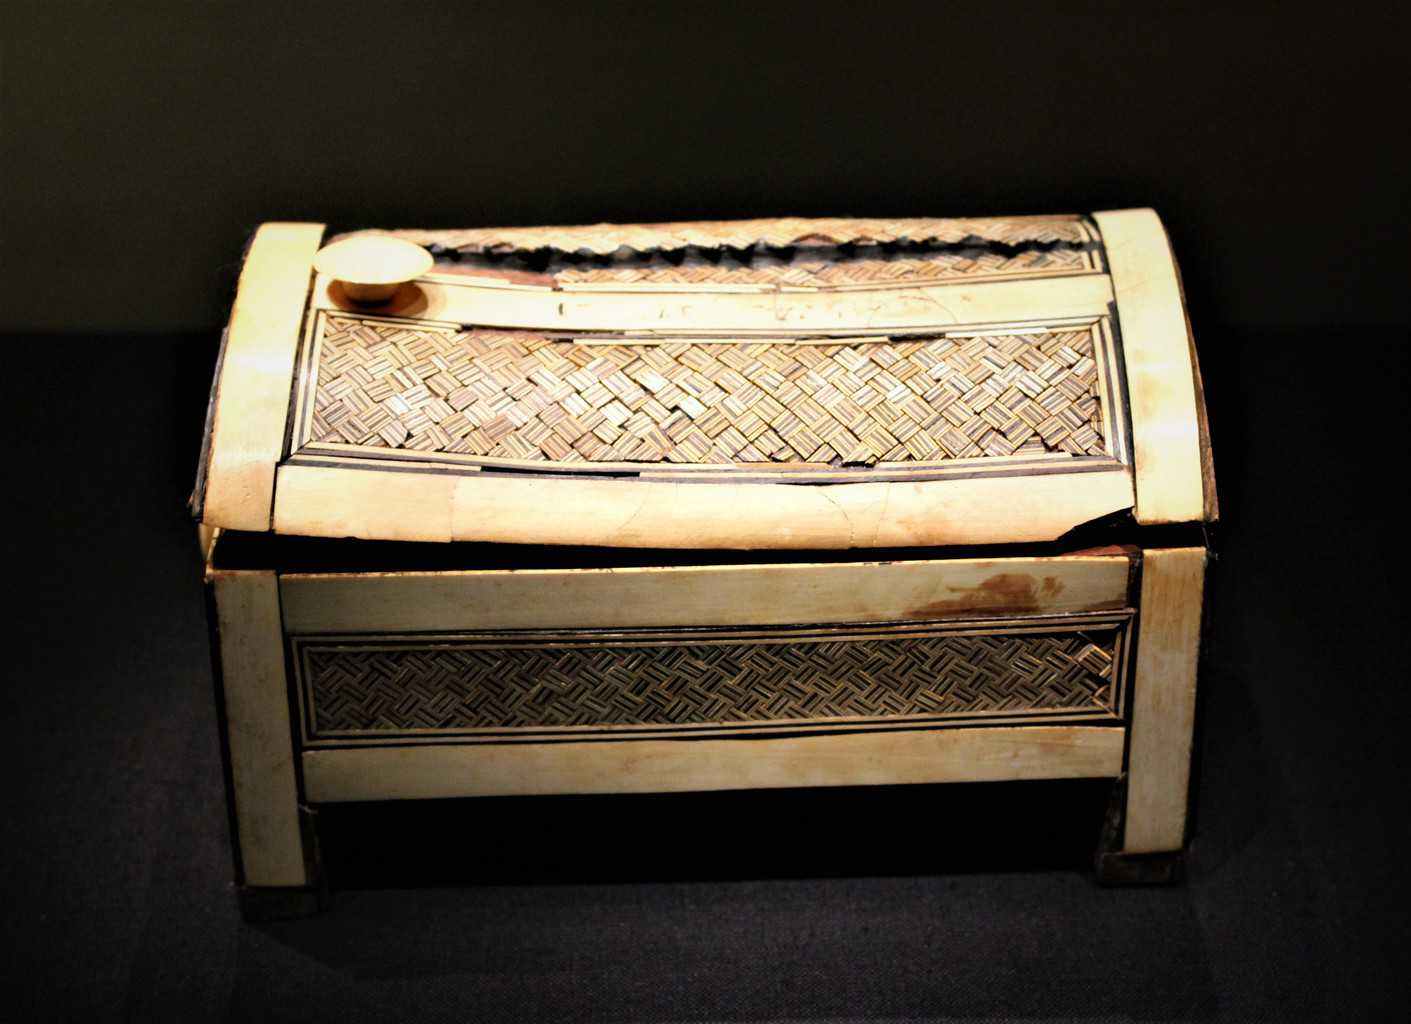 A box made of ebony and ivory from Tutankhamuns tomb.